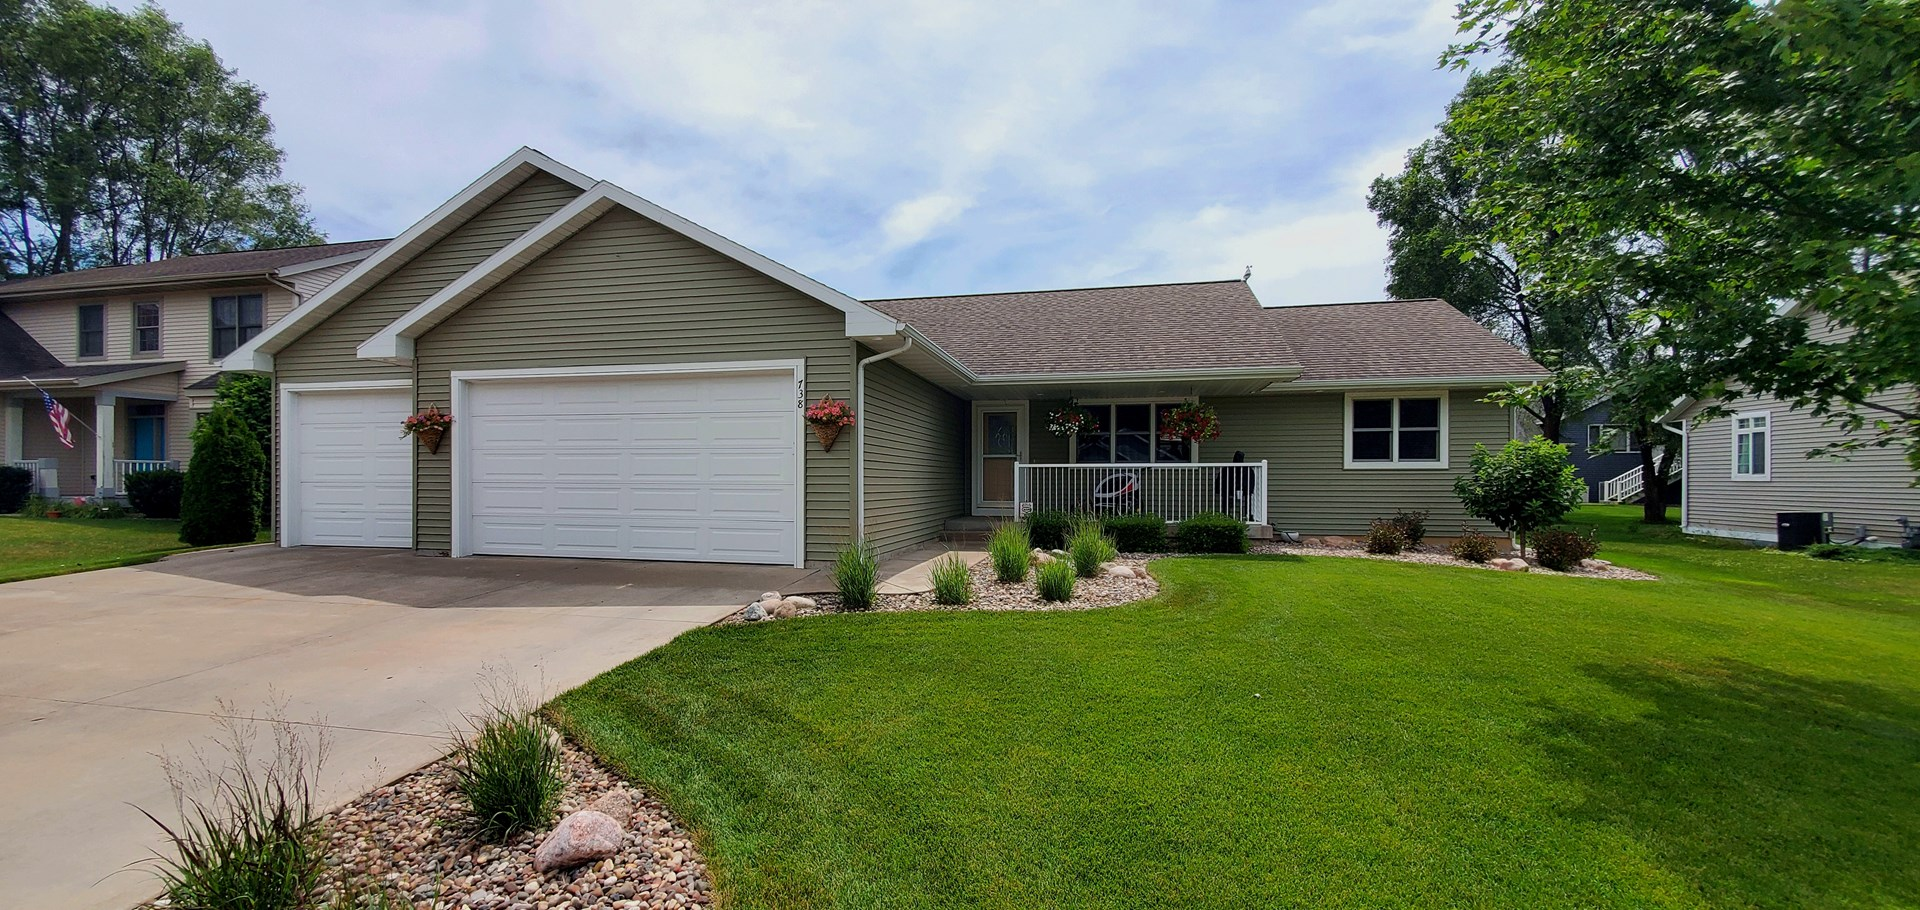 5 bedroom, 3 full bath ranch style open concept home!